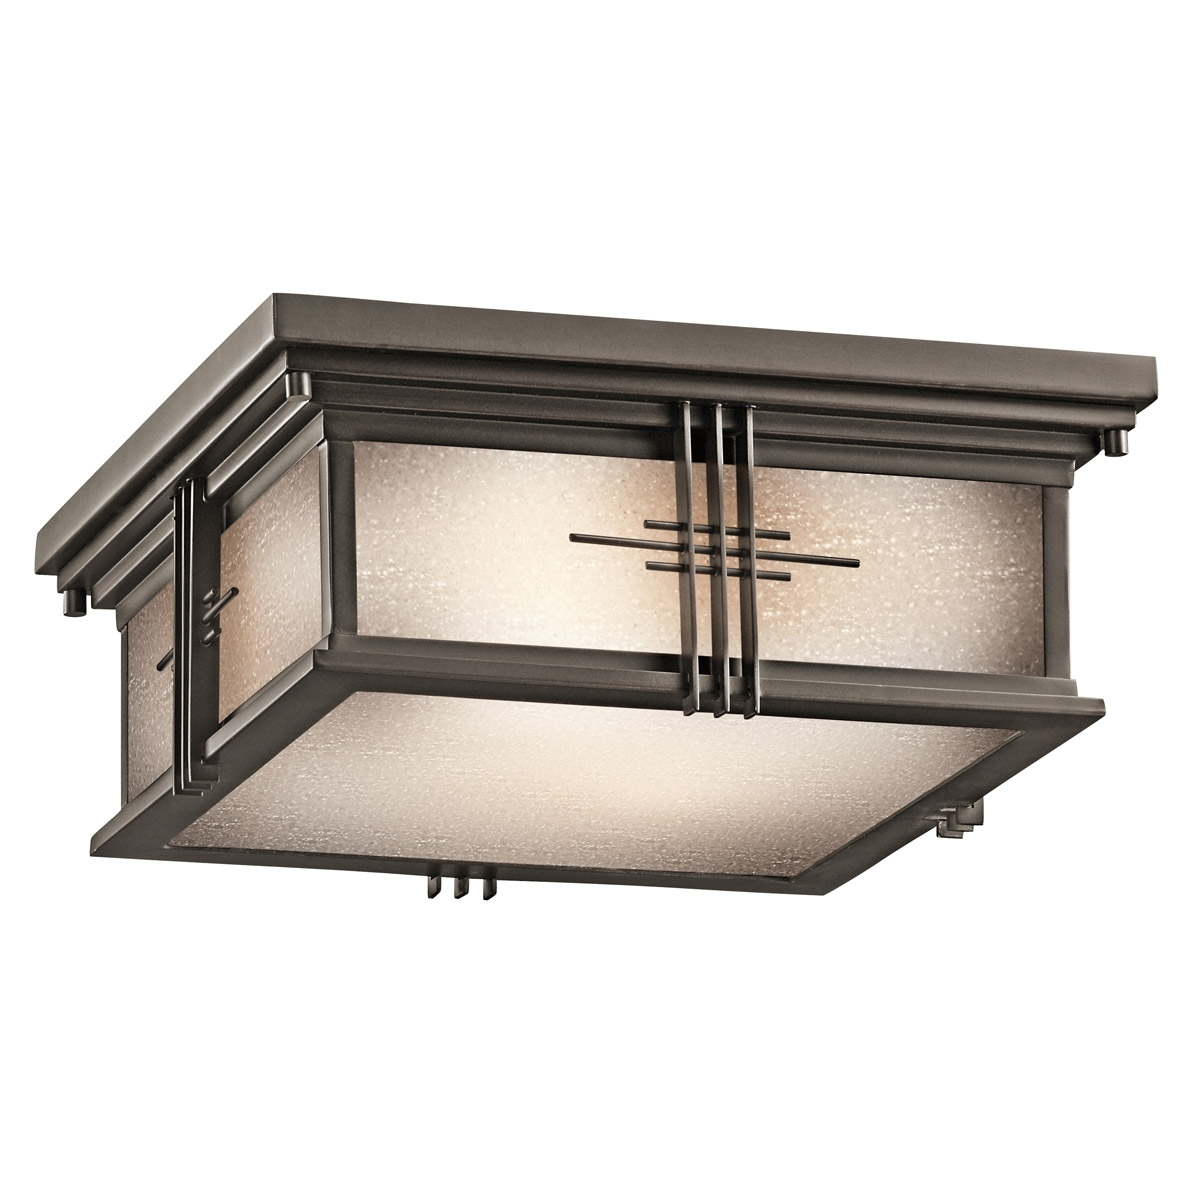 49164Oz Portman Square Outdoor Flush Mount Ceiling Fixture With Regard To Outdoor Ceiling Mounted Lights (#1 of 15)